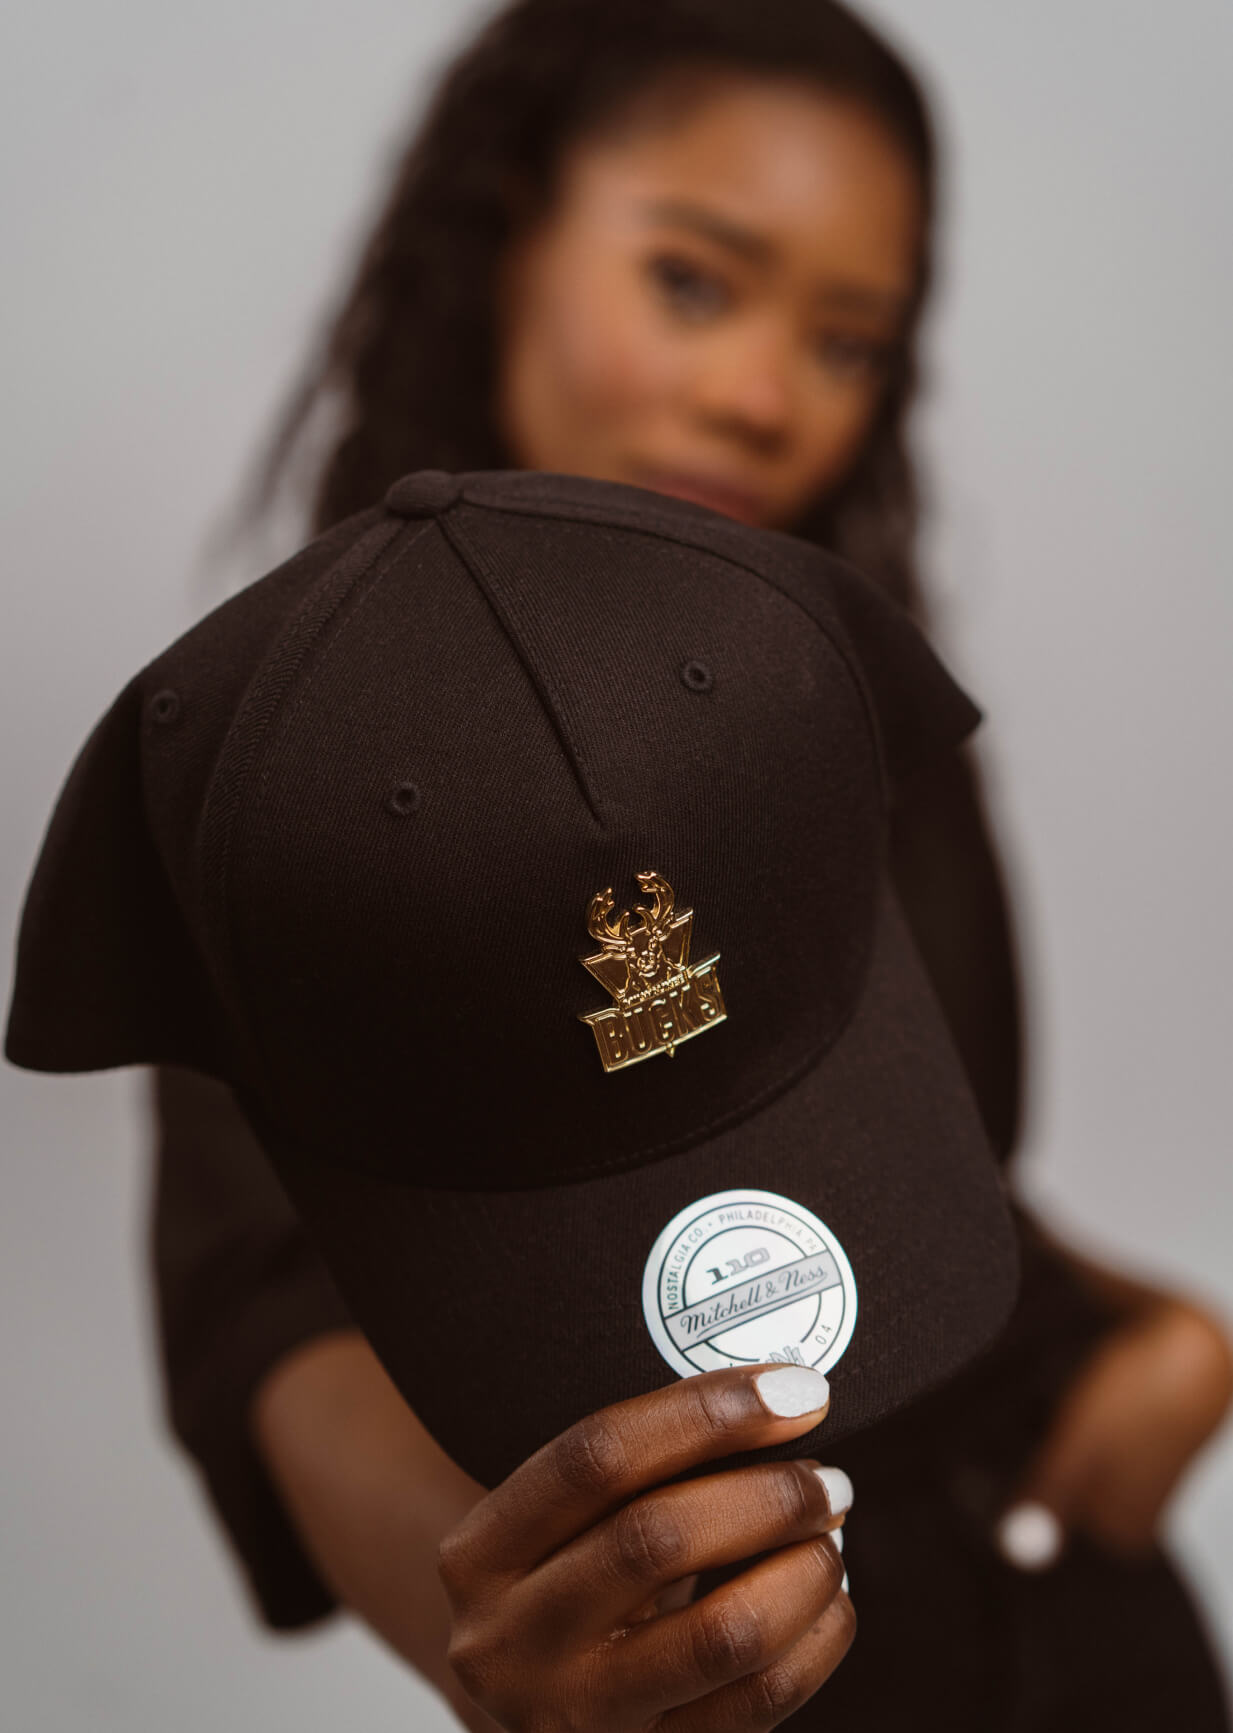 Hatstore Exclusive x Mitchell & Ness Gold Medal